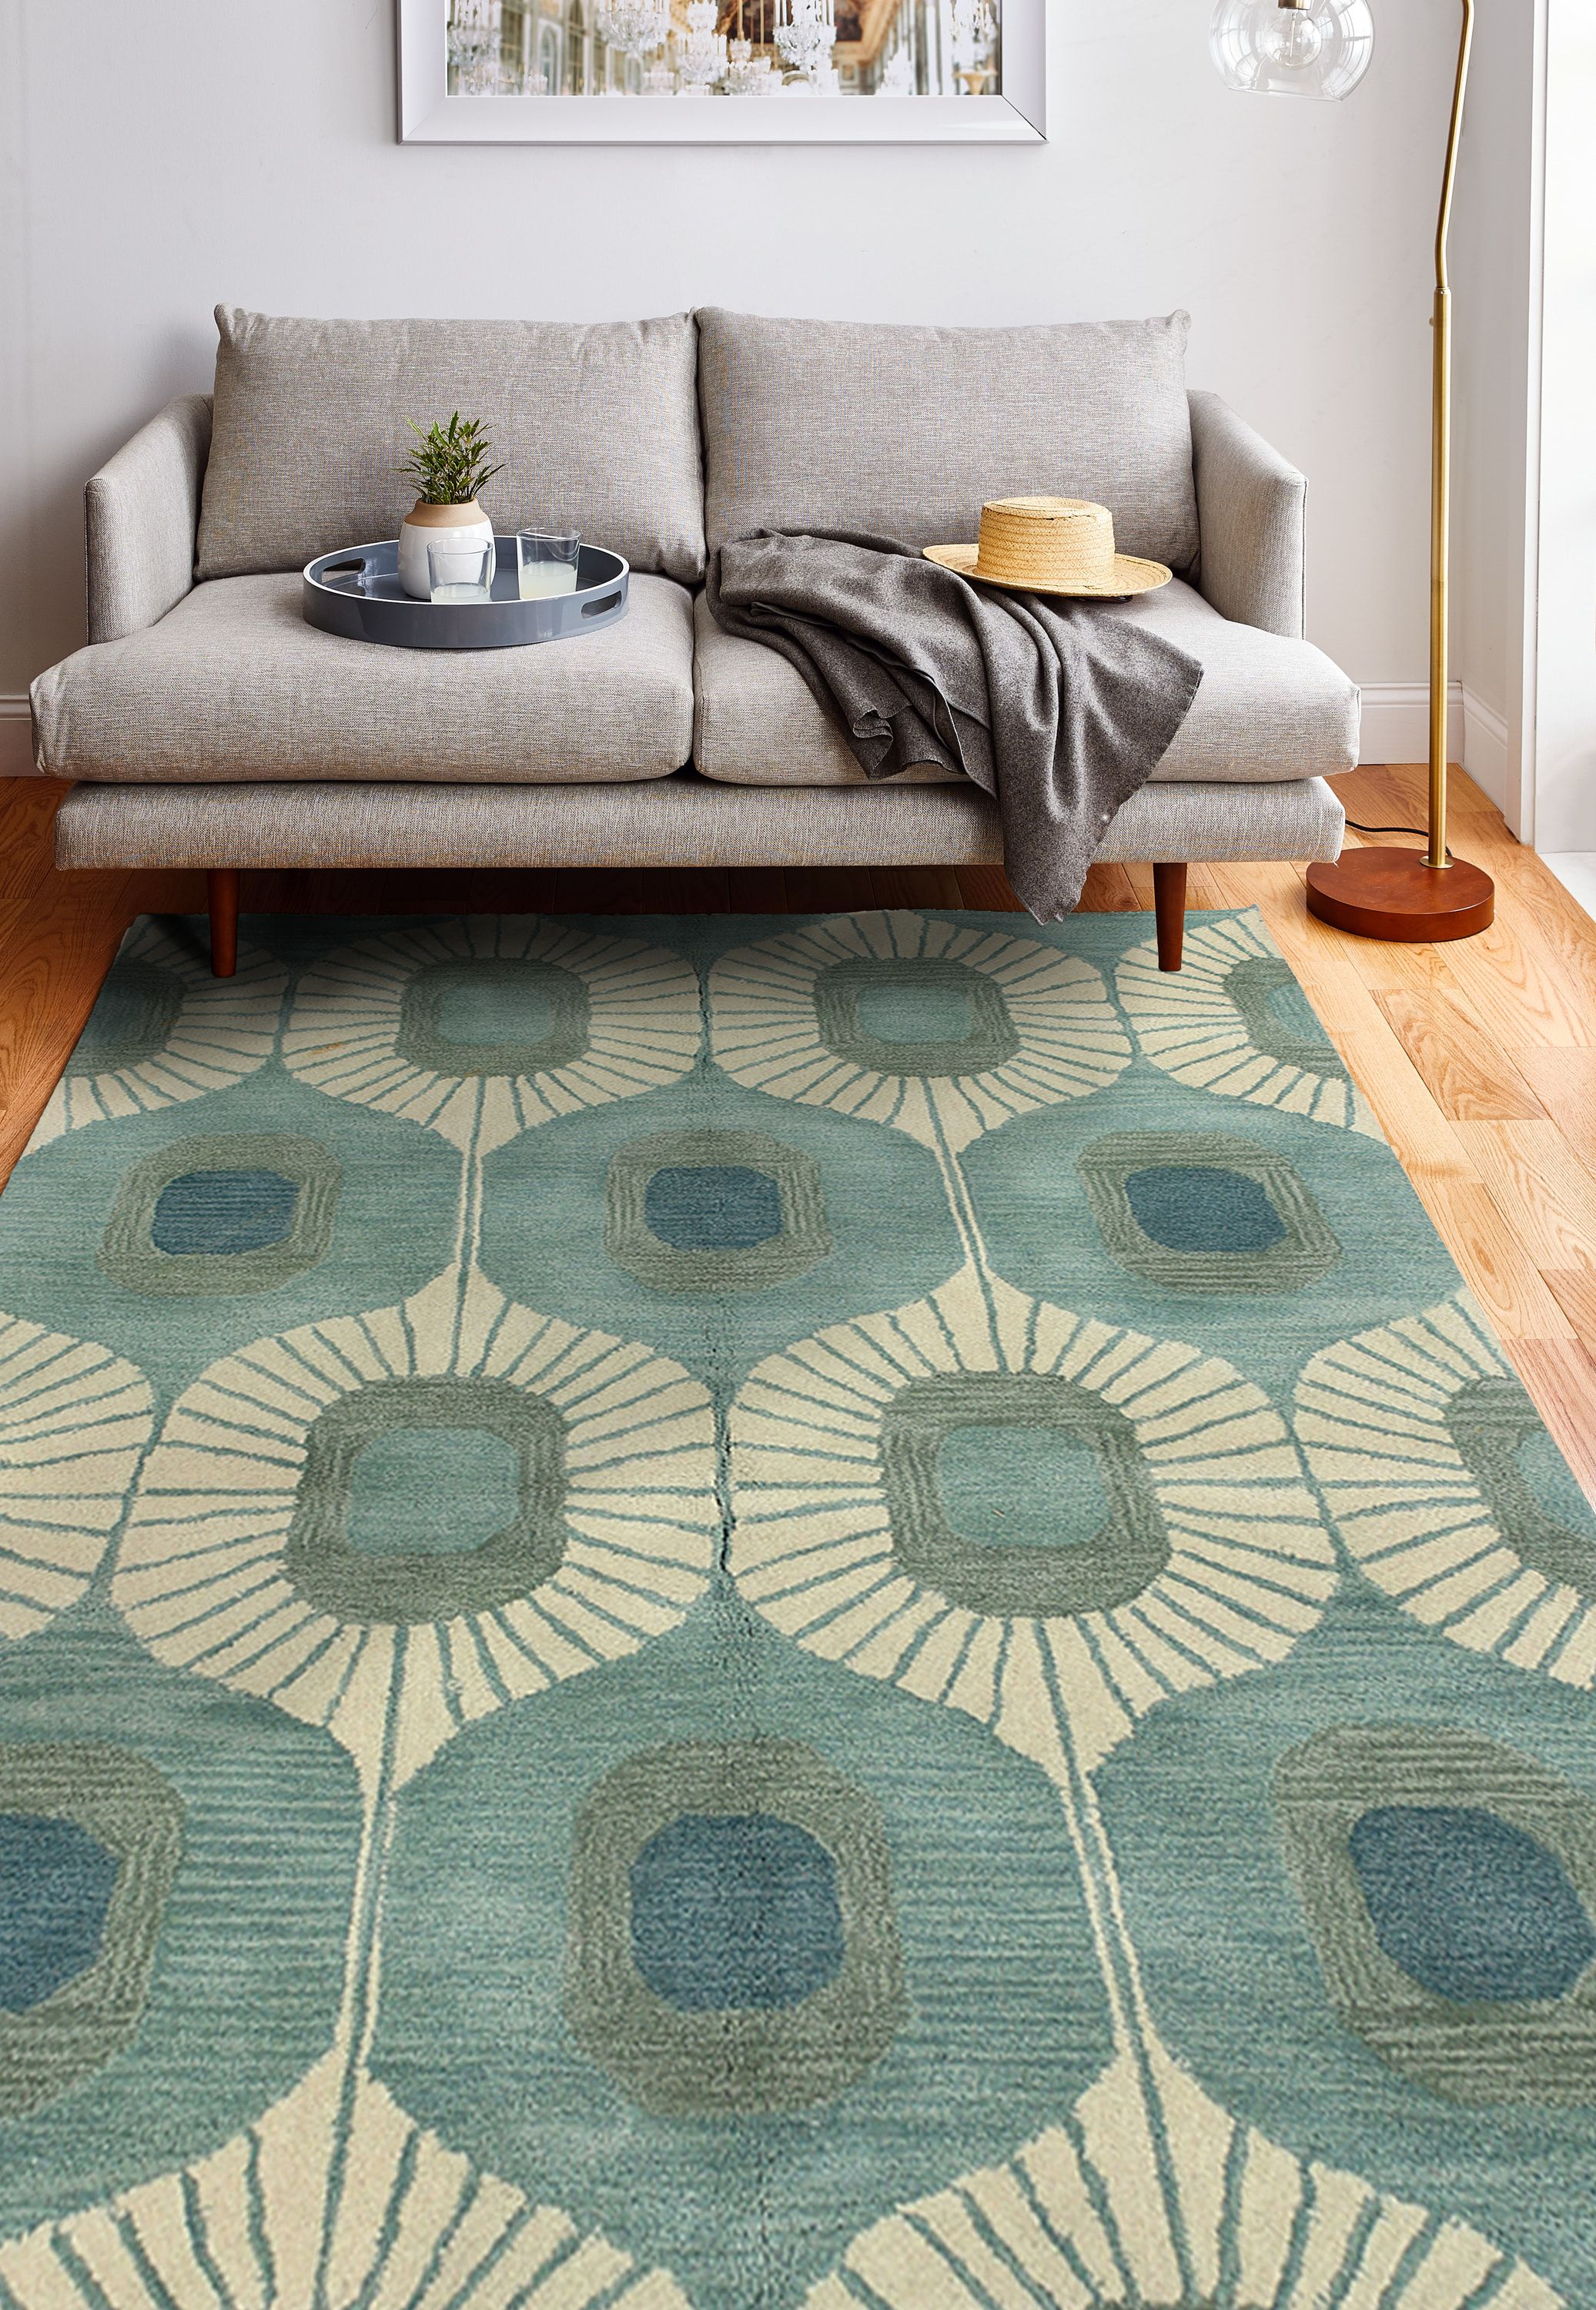 Living Room With The Woodbridge Are Rug